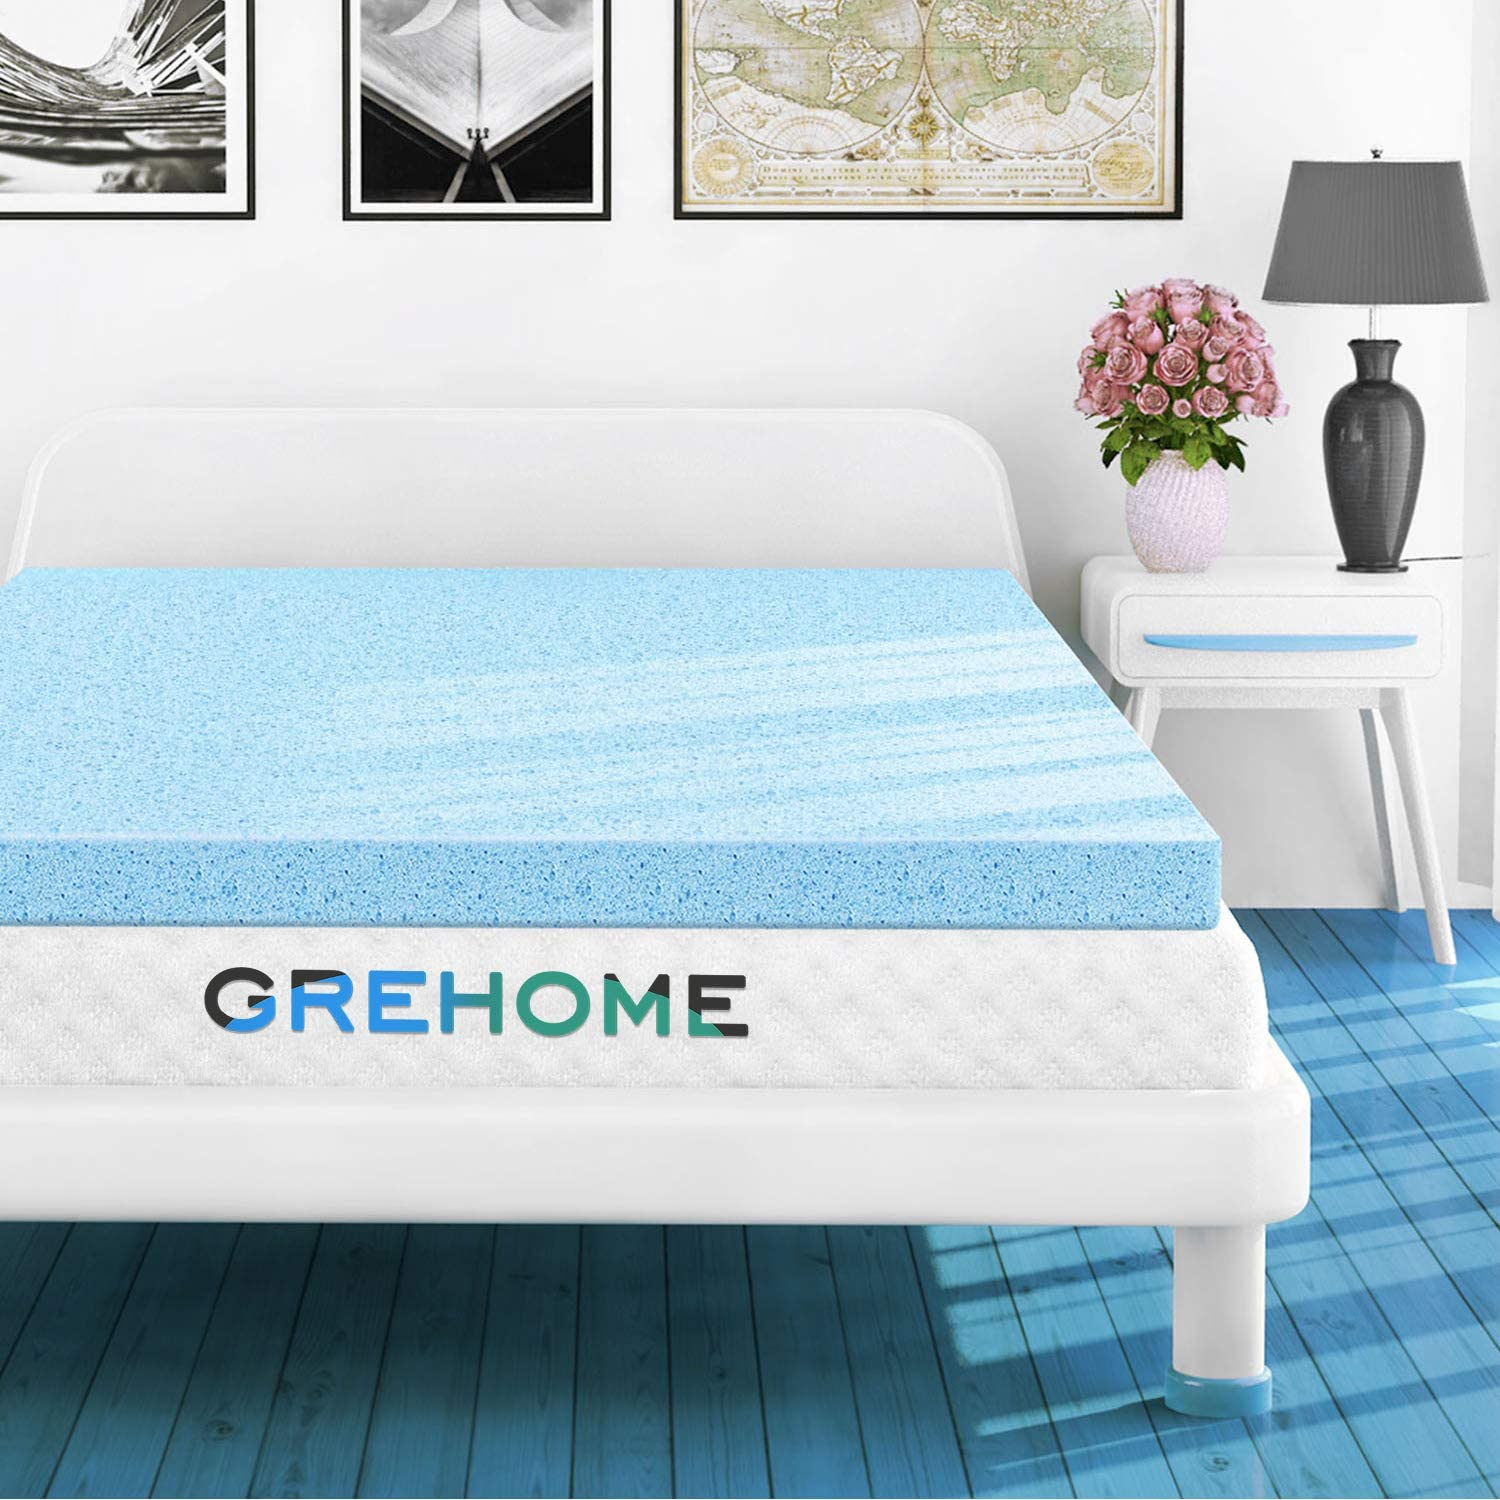 GREHOME Mattress Topper Twin, 2 Inch Gel Infused Memory Foam Mattress Topper, Mattress Topper for Twin Bed, 38 x 74 x 2 inches 97 x 188 x 5.08 cm